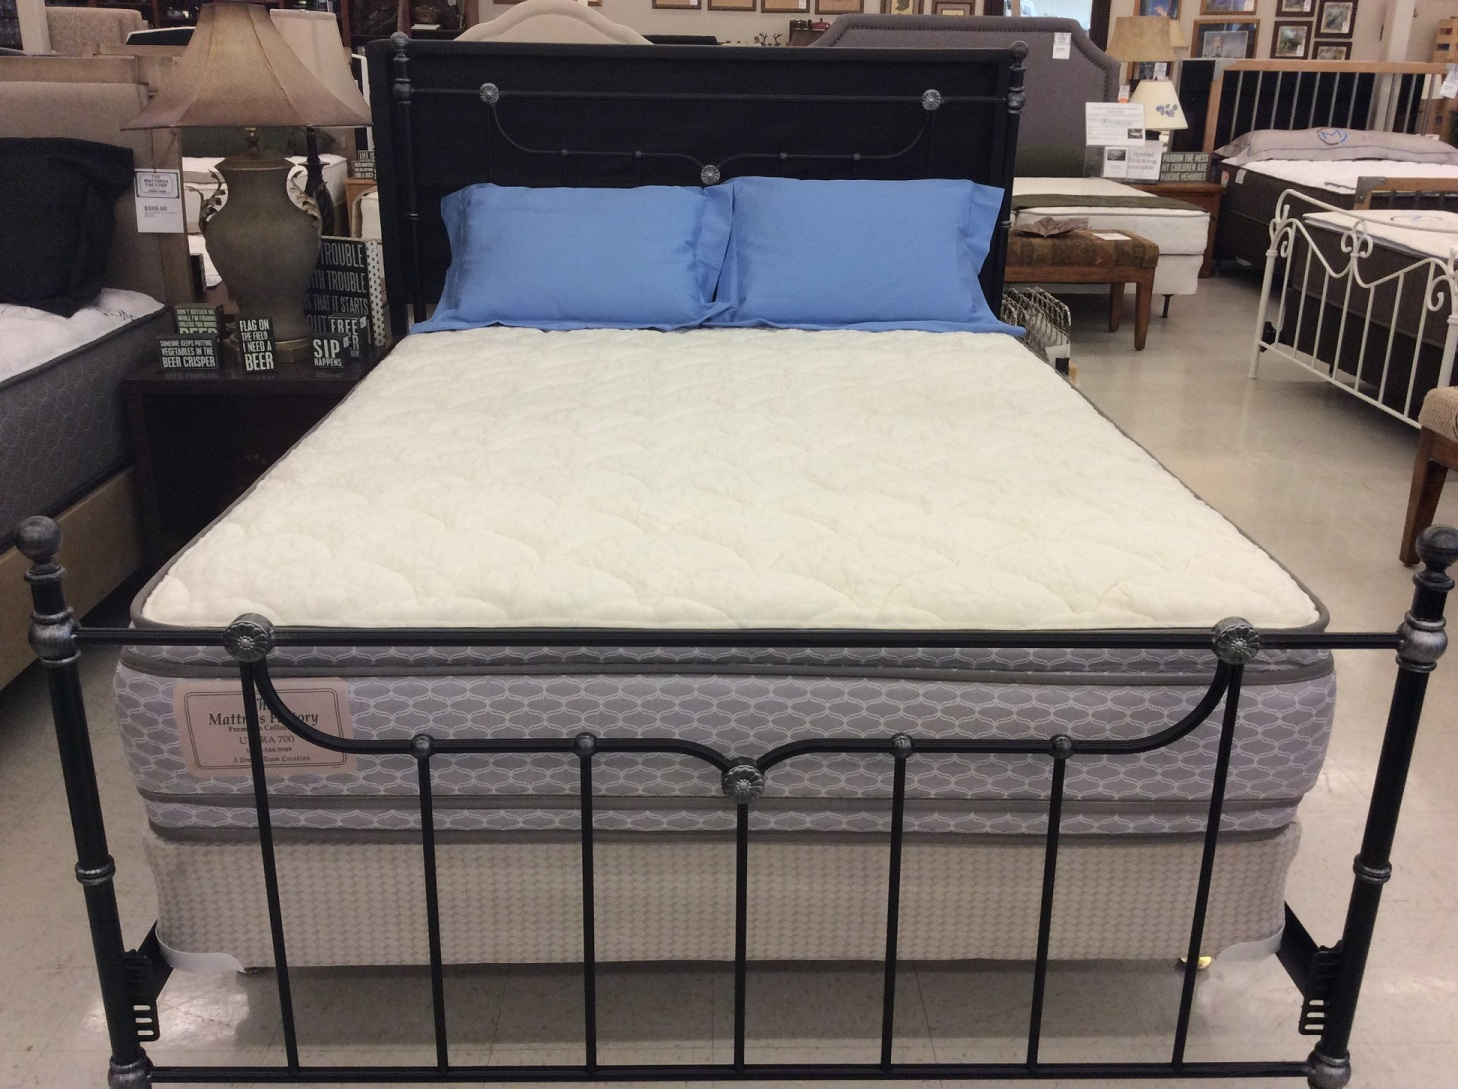 sale mattress factory bend best cantwell original orthopedic company firm innovations luxury inspirational sleep